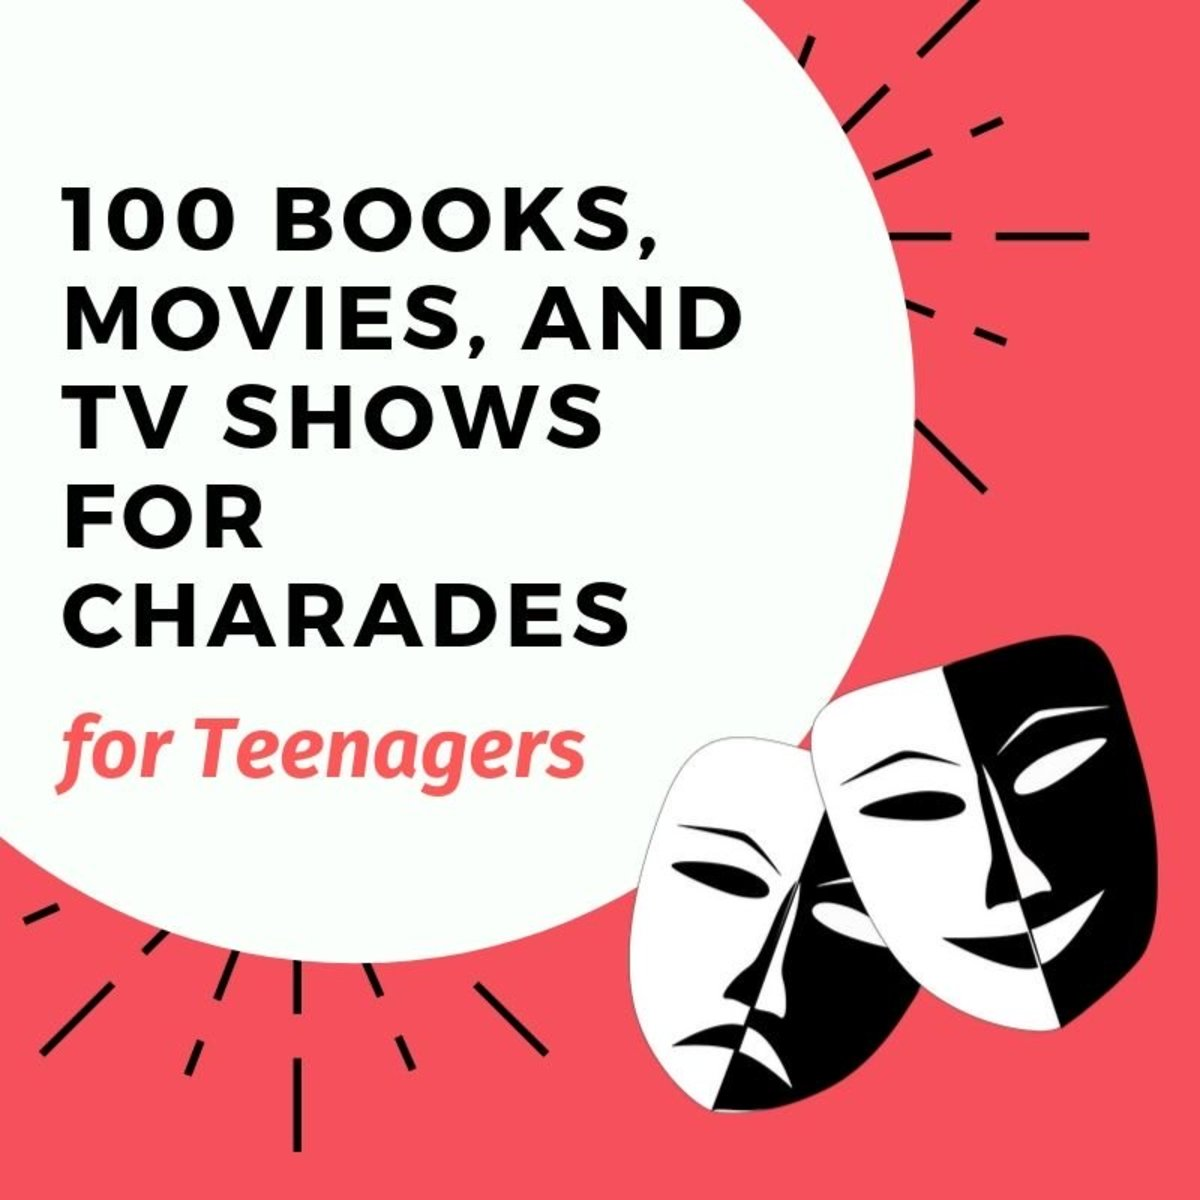 100+ TV Shows, Movies, and Books for Teenage Charades Games